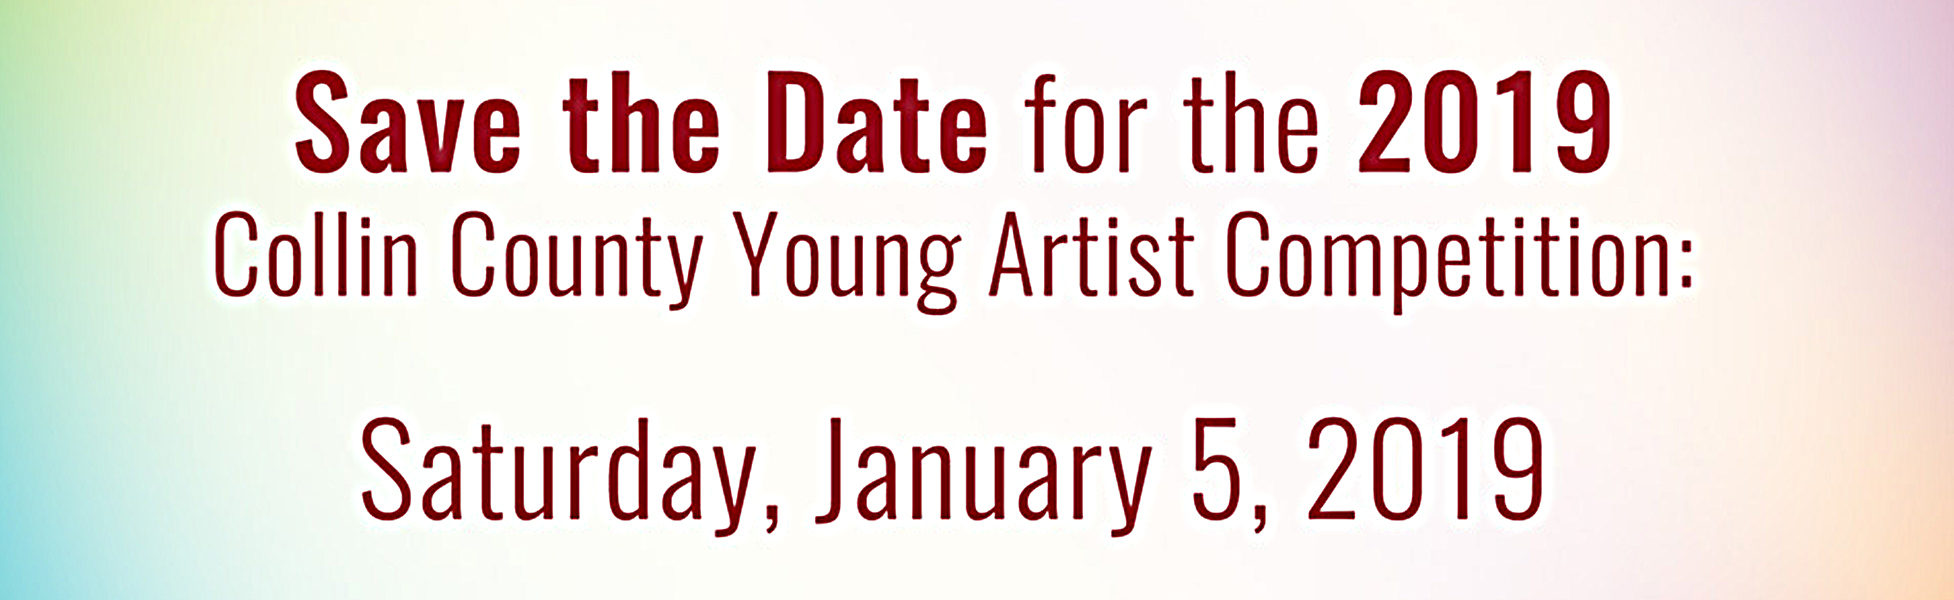 2019_Collin County Young Artist Competition